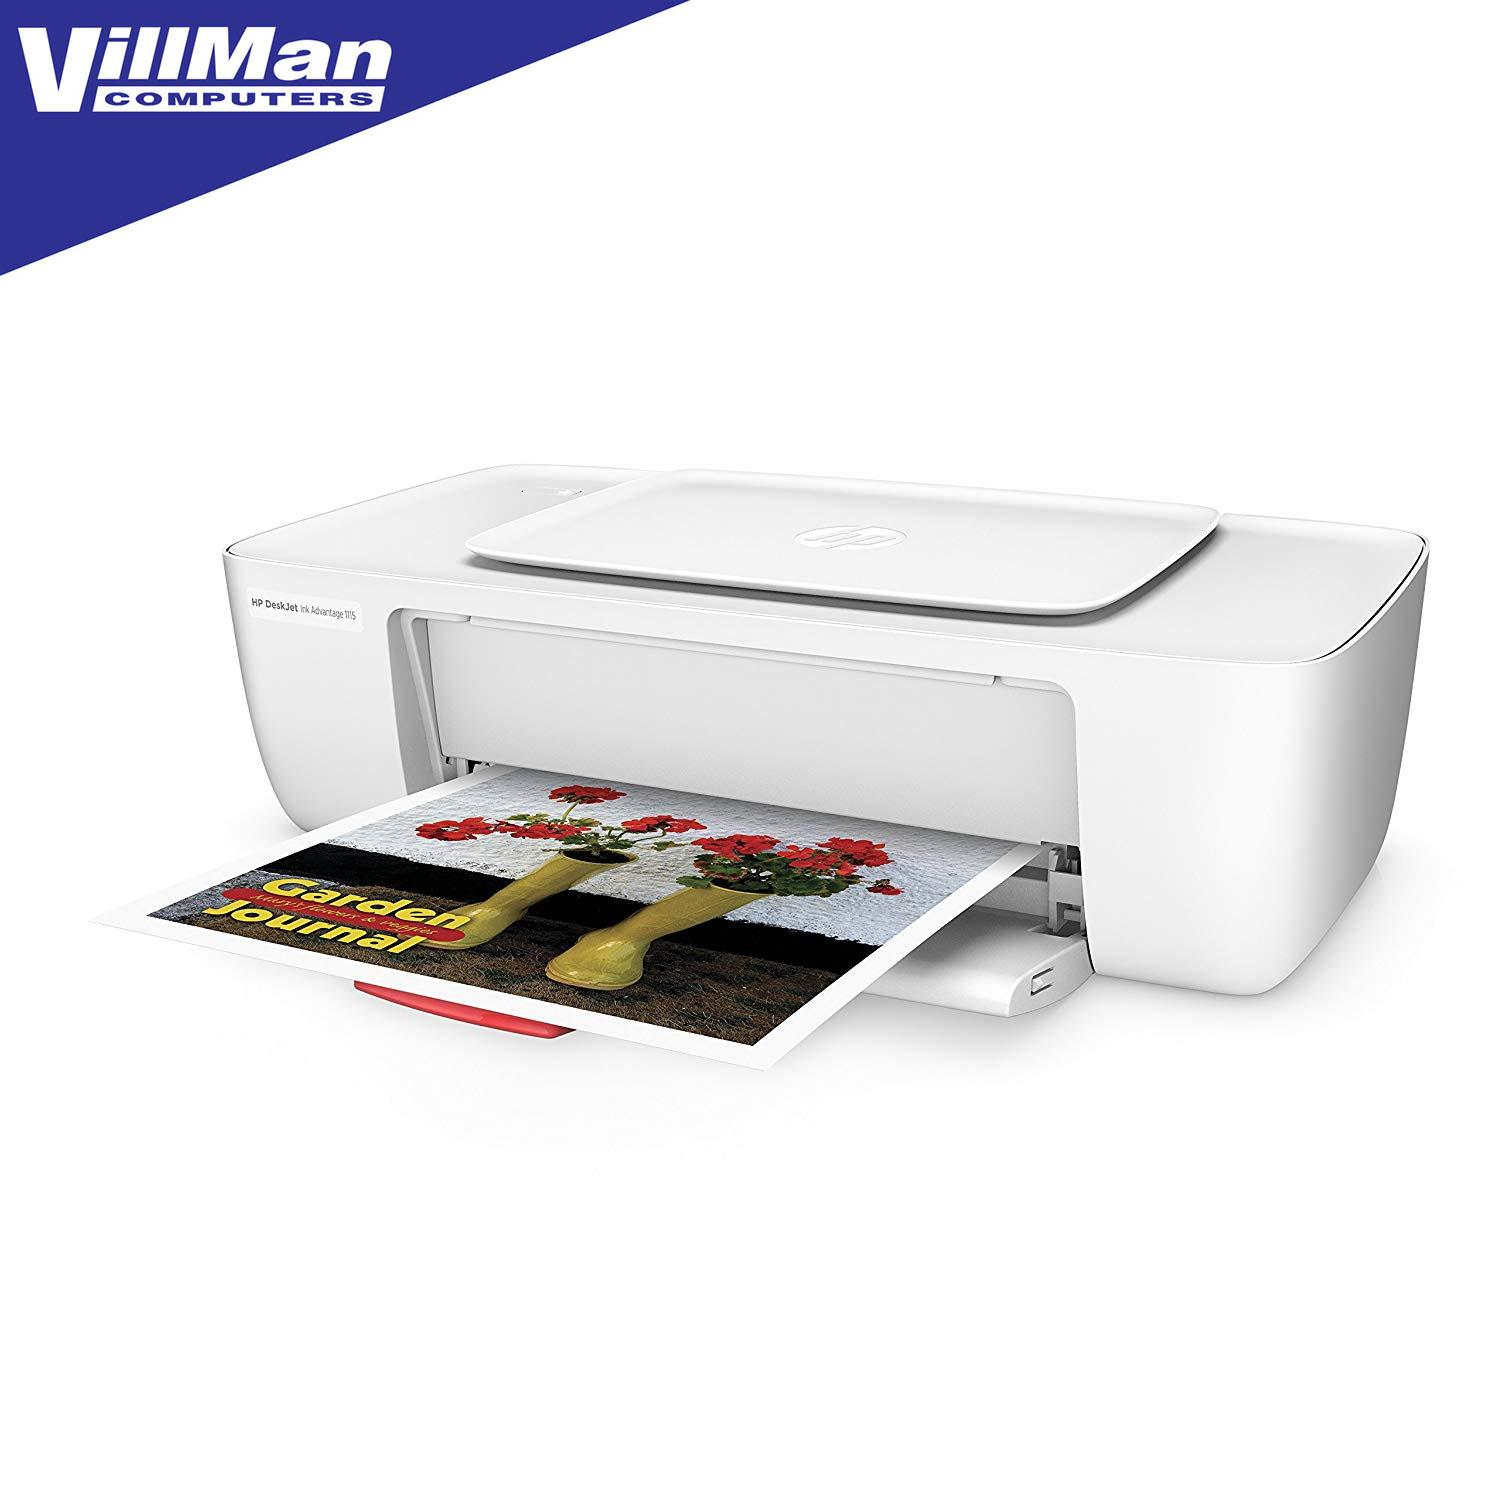 Multi-Function Printers for sale - All-in-One Printers prices ... f73ce1d2e3